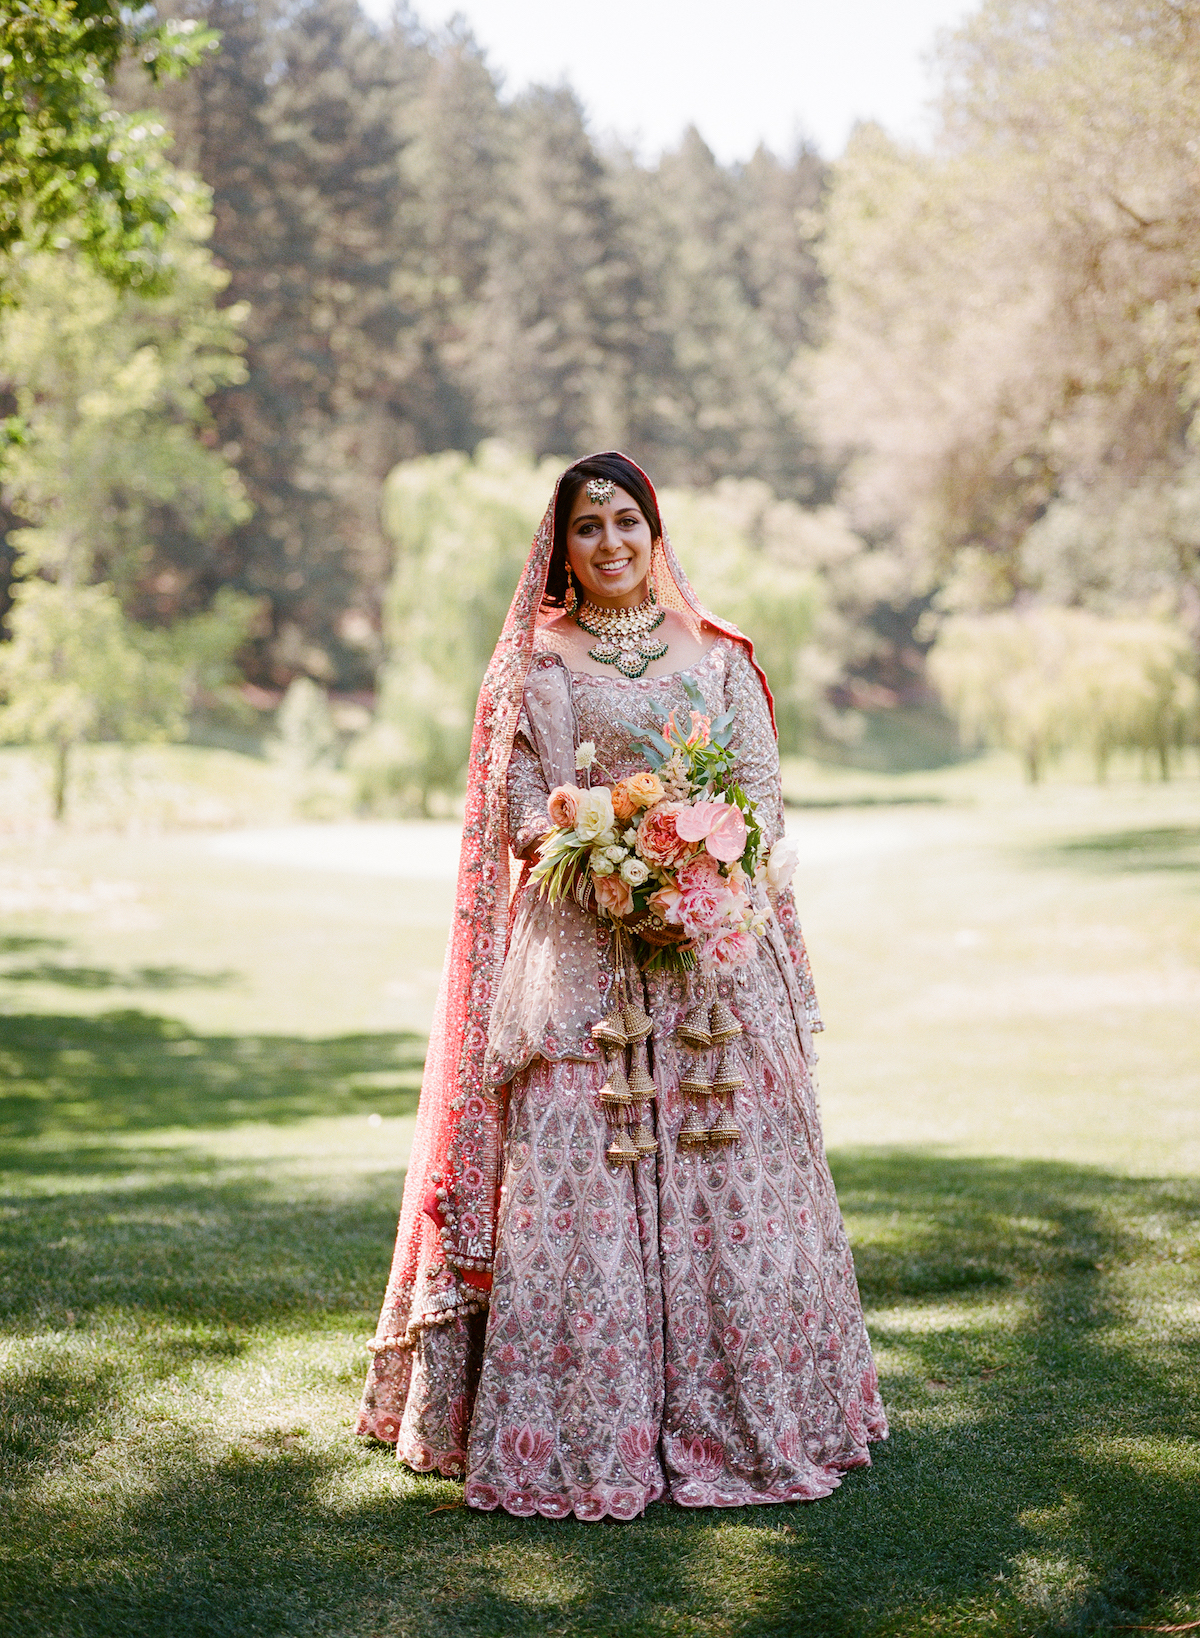 Long-Sleeved Indian Wedding Dress